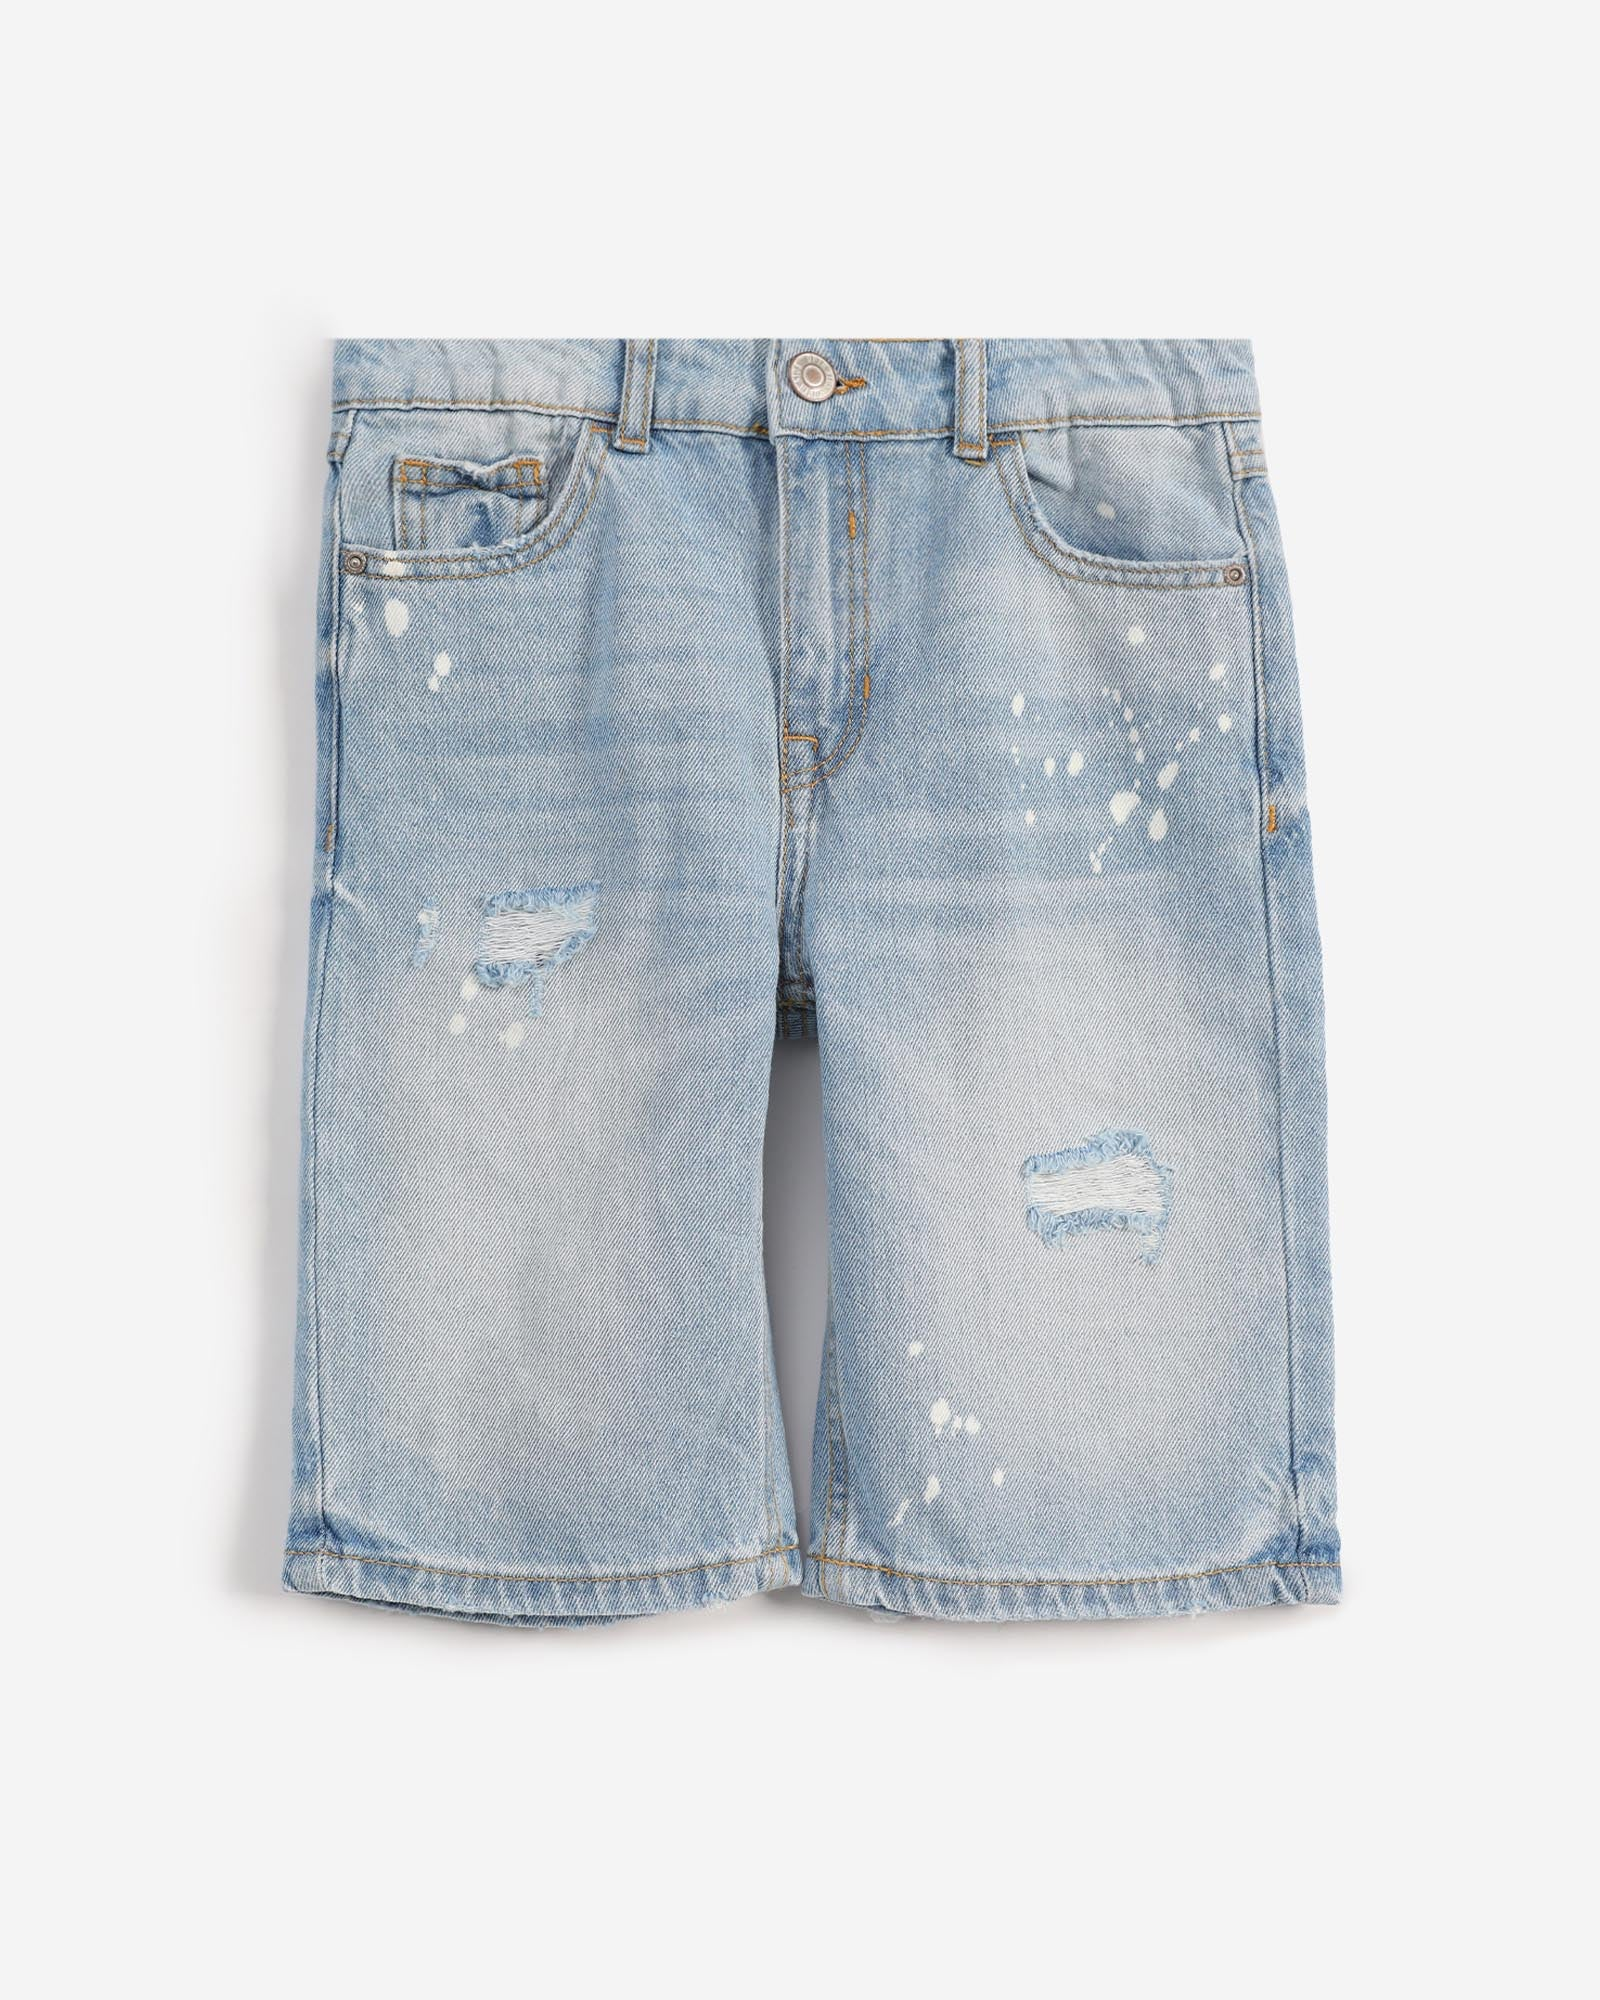 Distressed Shorts with splashes